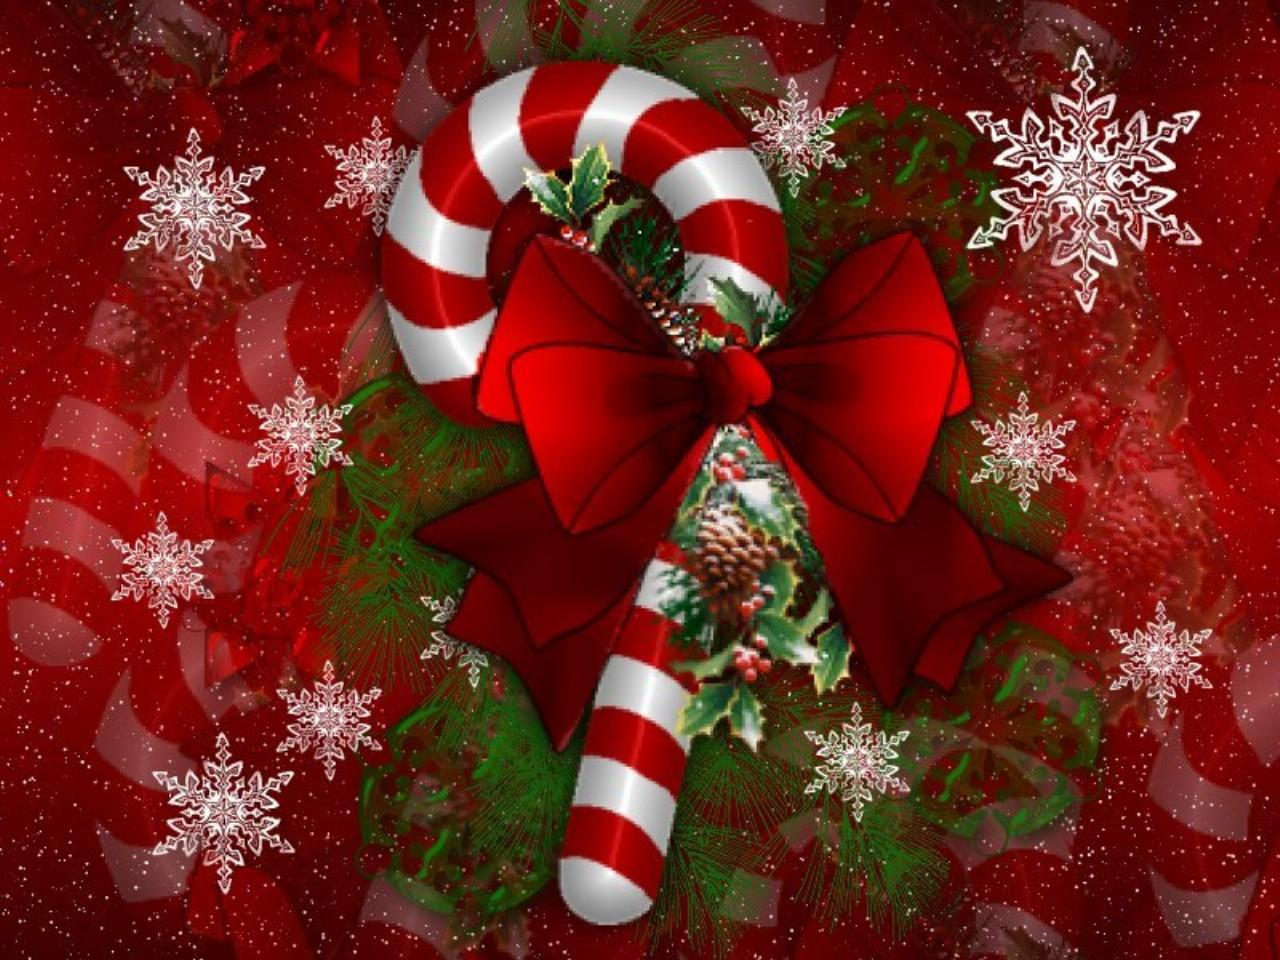 Jack Skellington Iphone Wallpaper Download Christmas Candy Cane Wallpaper Gallery